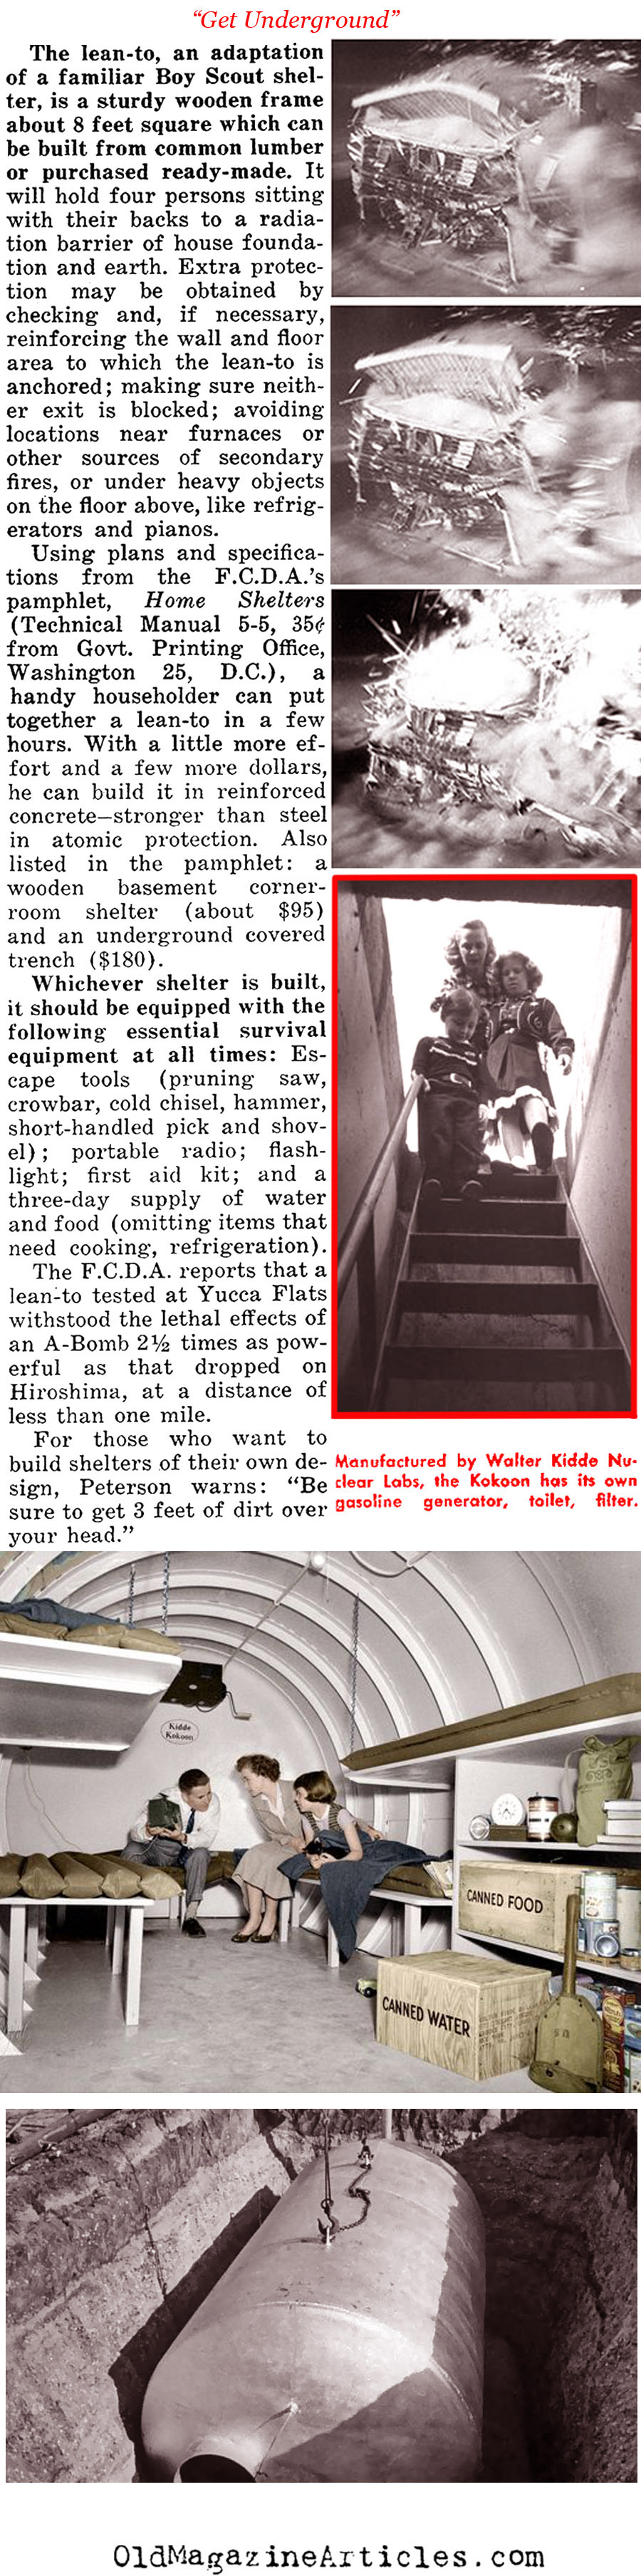 The Allure of the Private Bomb Shelter (People Today Magazine, 1955)